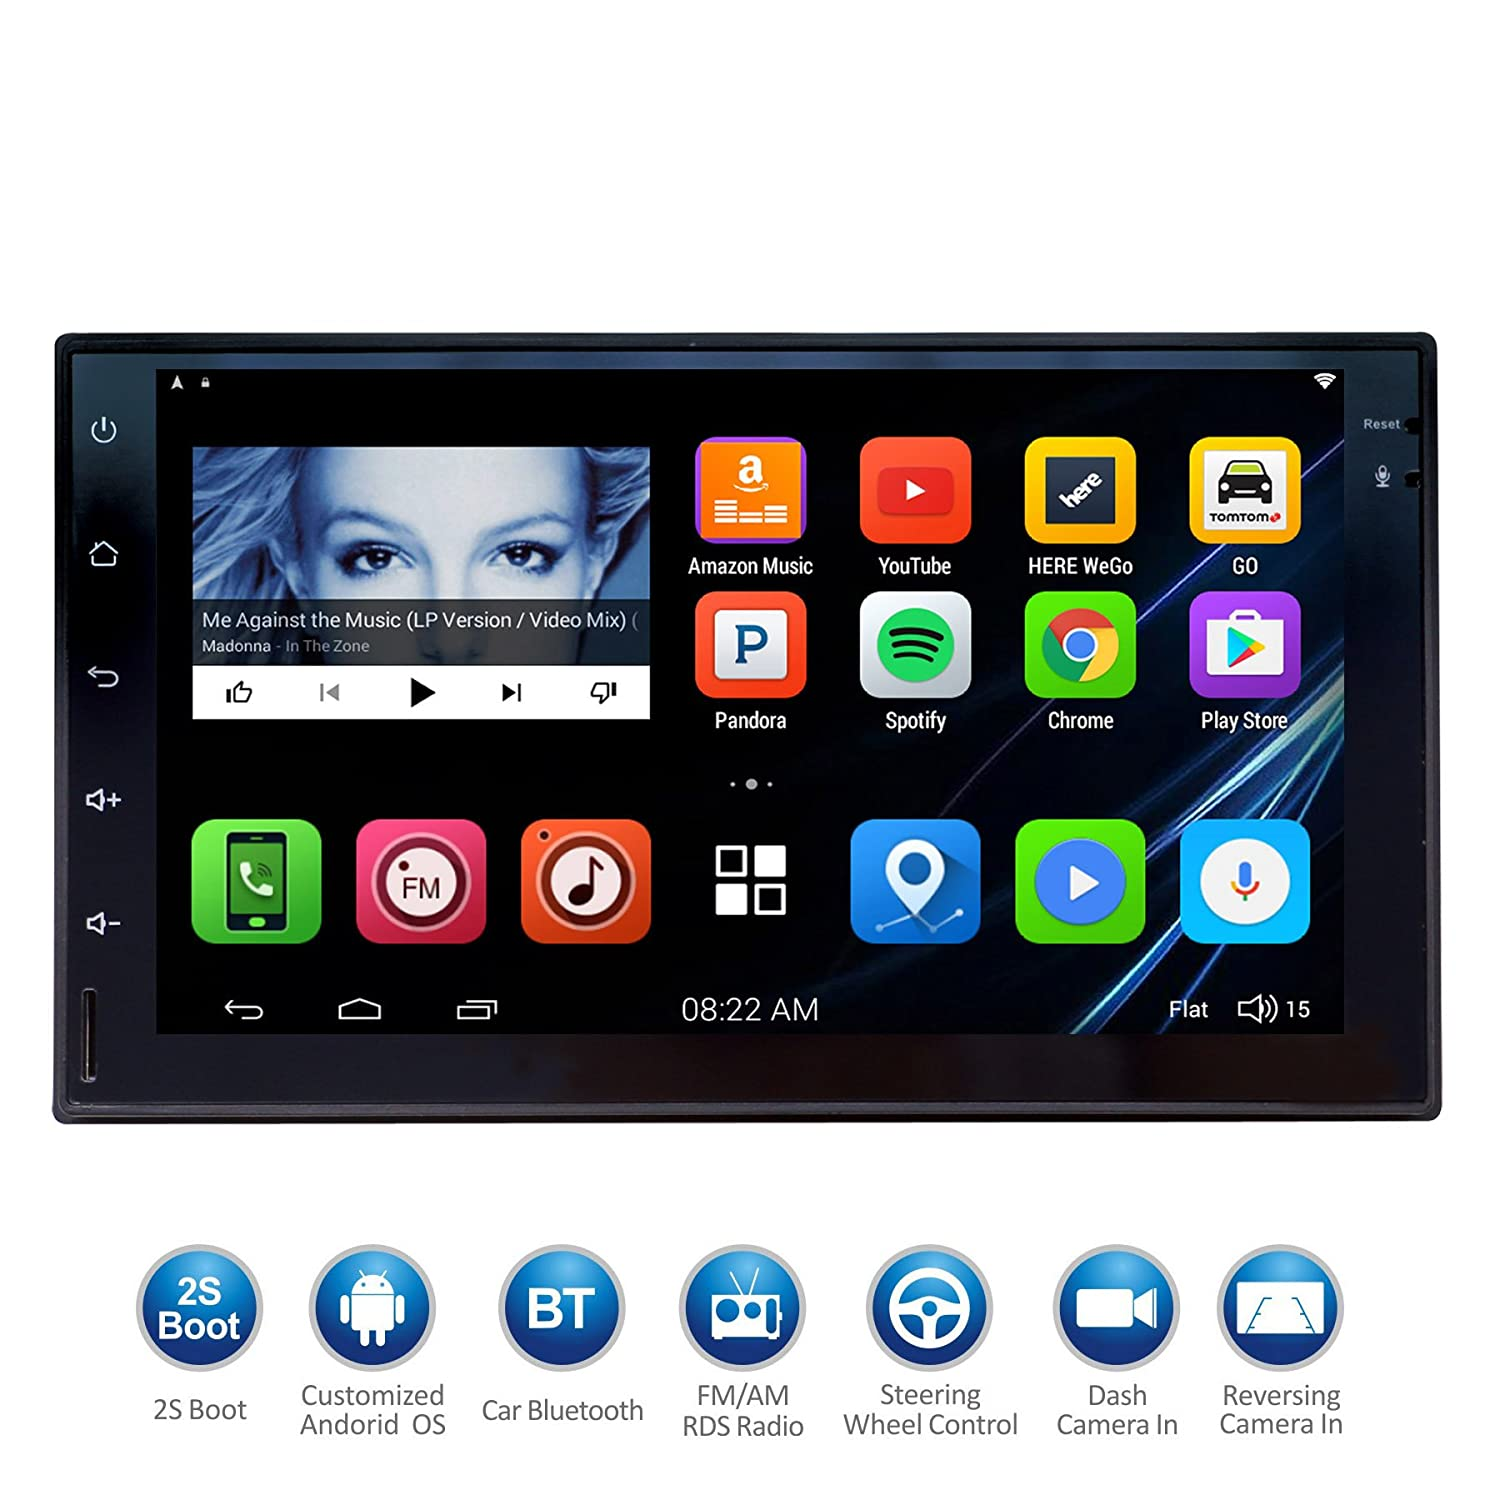 Atoto 7 Hd Touchscreen 2din Android Car Navigation 2004 F150 Obdii Wiring Harness Stereo Quadcore Entertainment Multimedia W Fm Rds Radiowifibtmirror Linkand